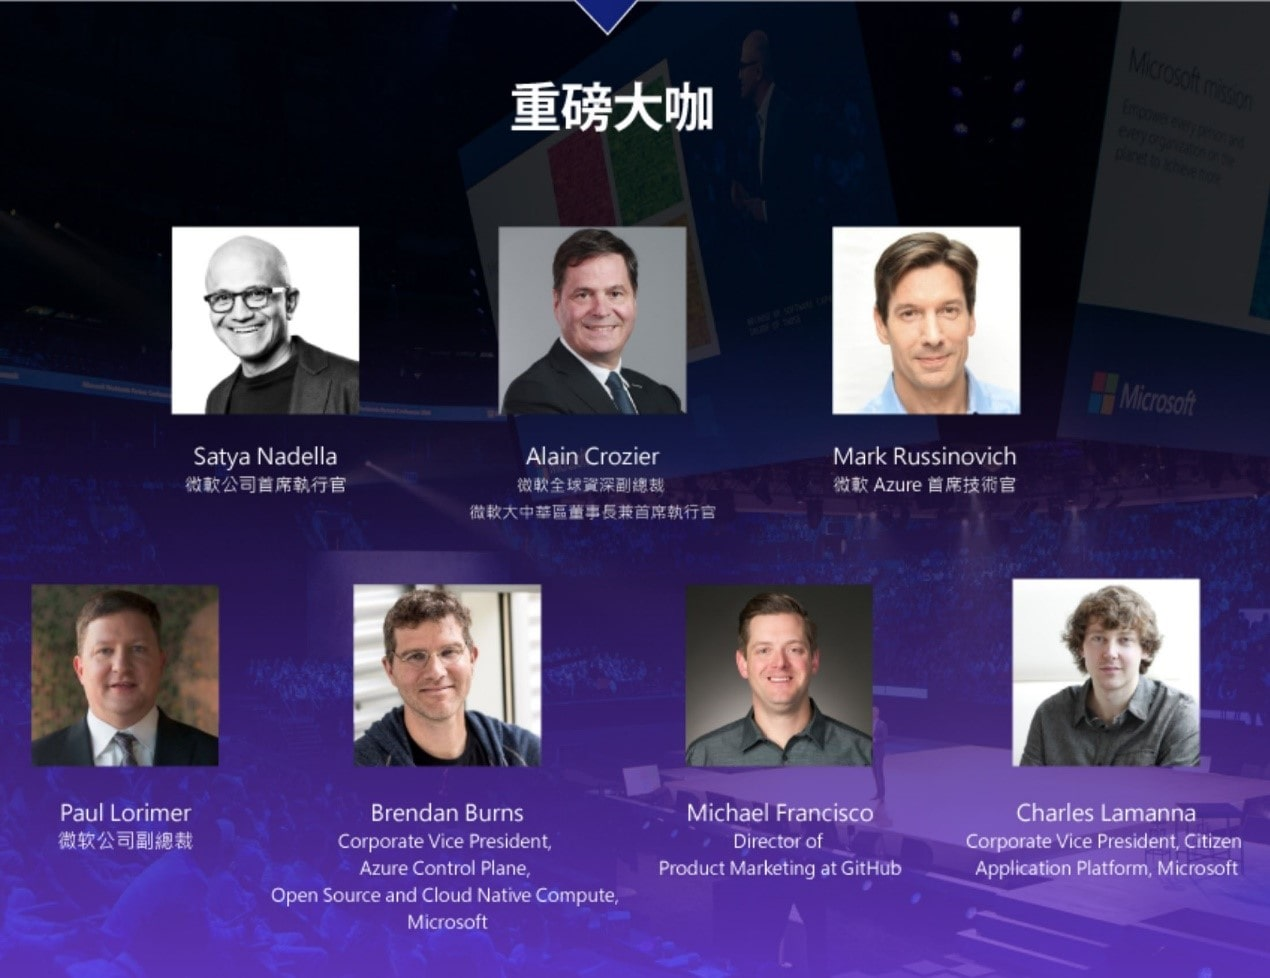 Satya Nadella (The CEO of Microsoft), and Alain Crozier (Chairman& CEO Greater China Region) were invited to share keynote speeches on the topic of 'digital transformation acceleration'.